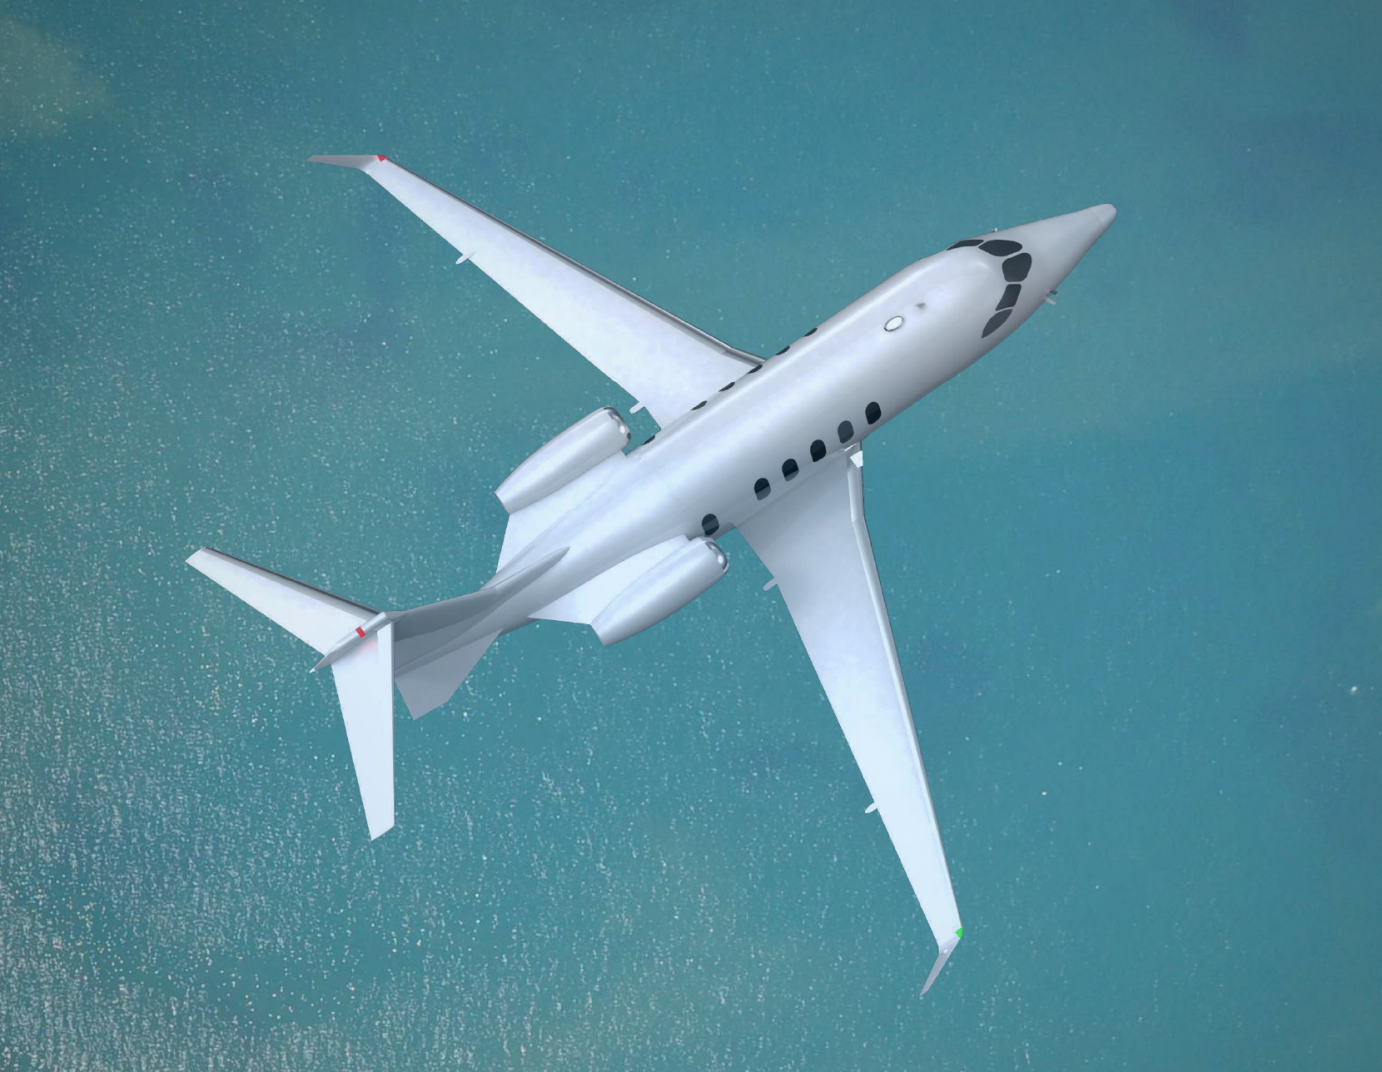 KU aerospace engineering students won three First Place awards at an international aerospace design competition sponsored by the AIAA.  It's the first time any school has captured all three top honors in any single competition.  This is a photo of an award-winning business jet, designed by one of KU's teams.